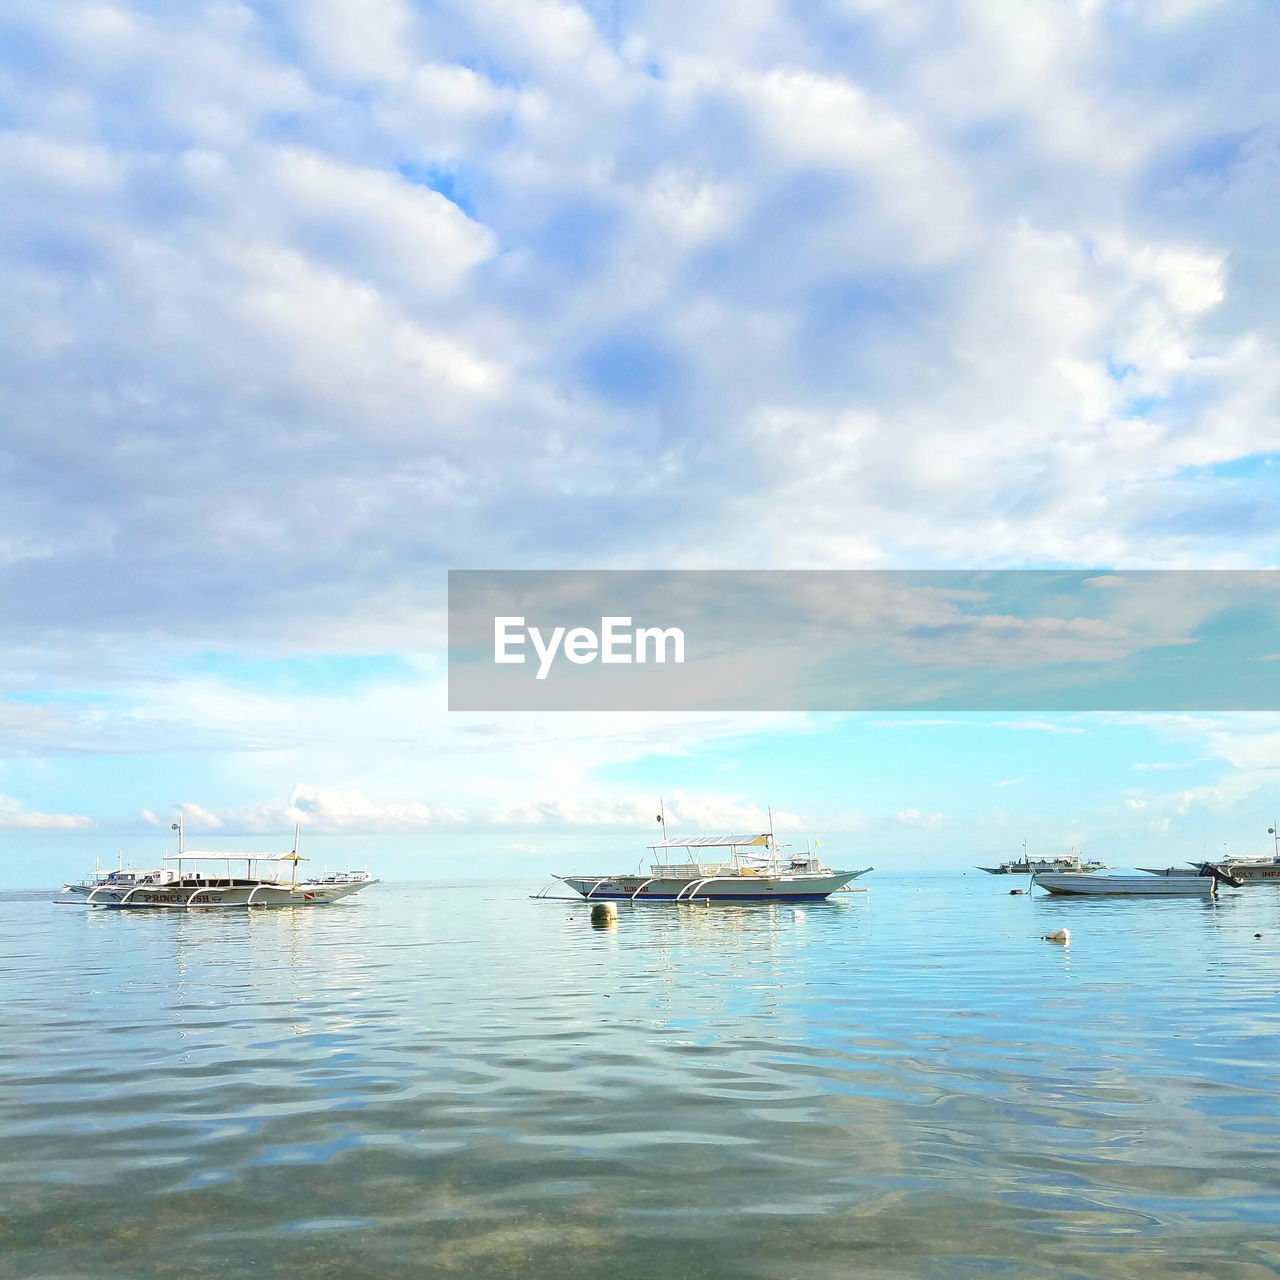 VIEW OF BOATS IN SEA AGAINST SKY